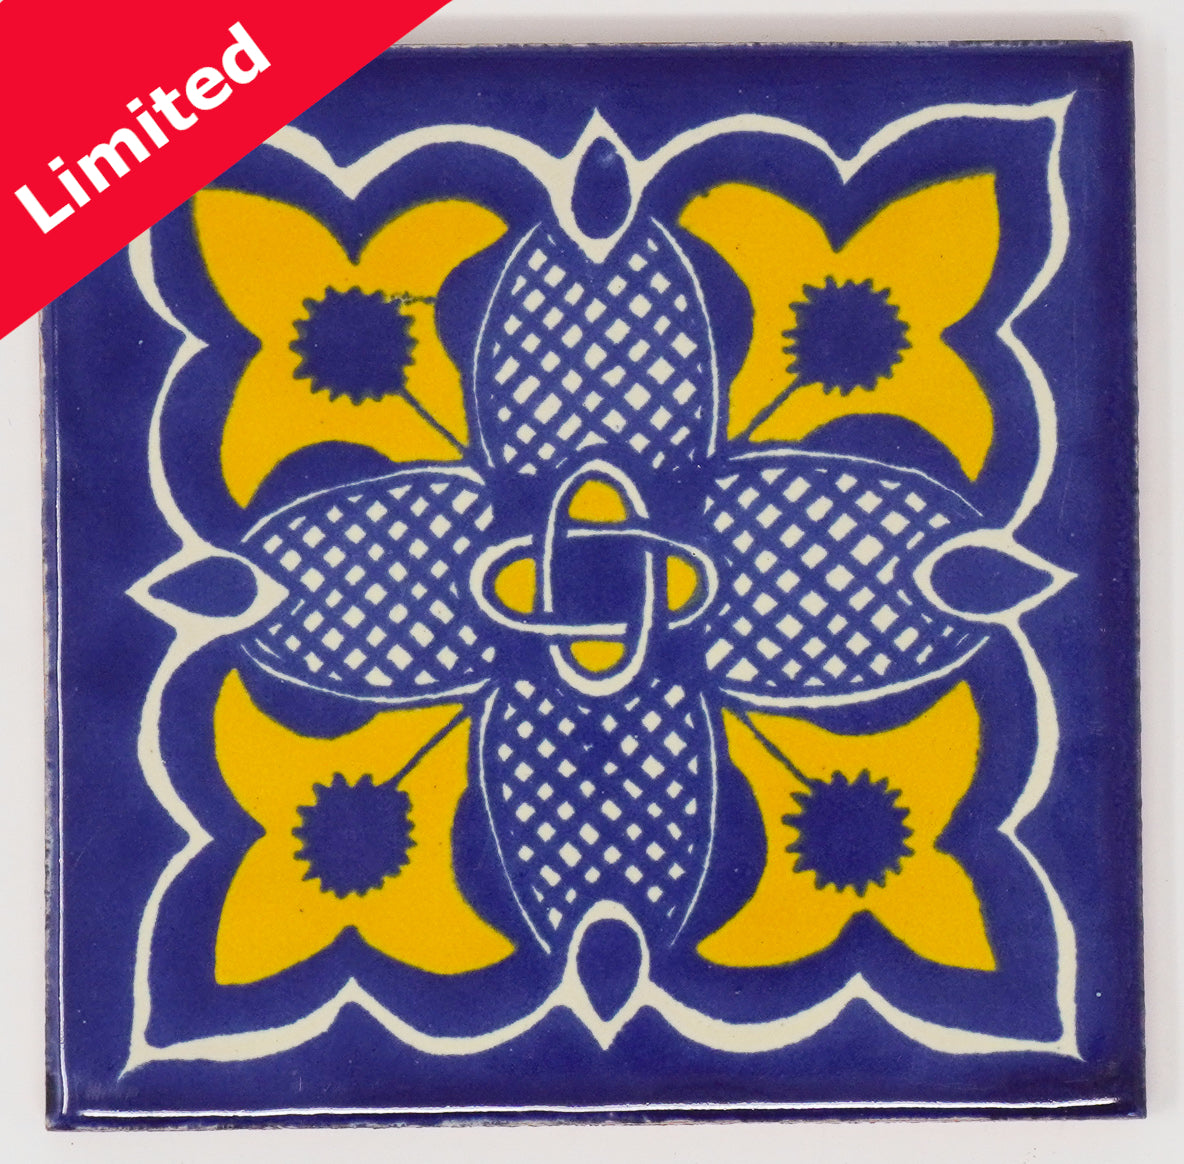 Tomás Limited Edition Handmade 10.5cm Tile